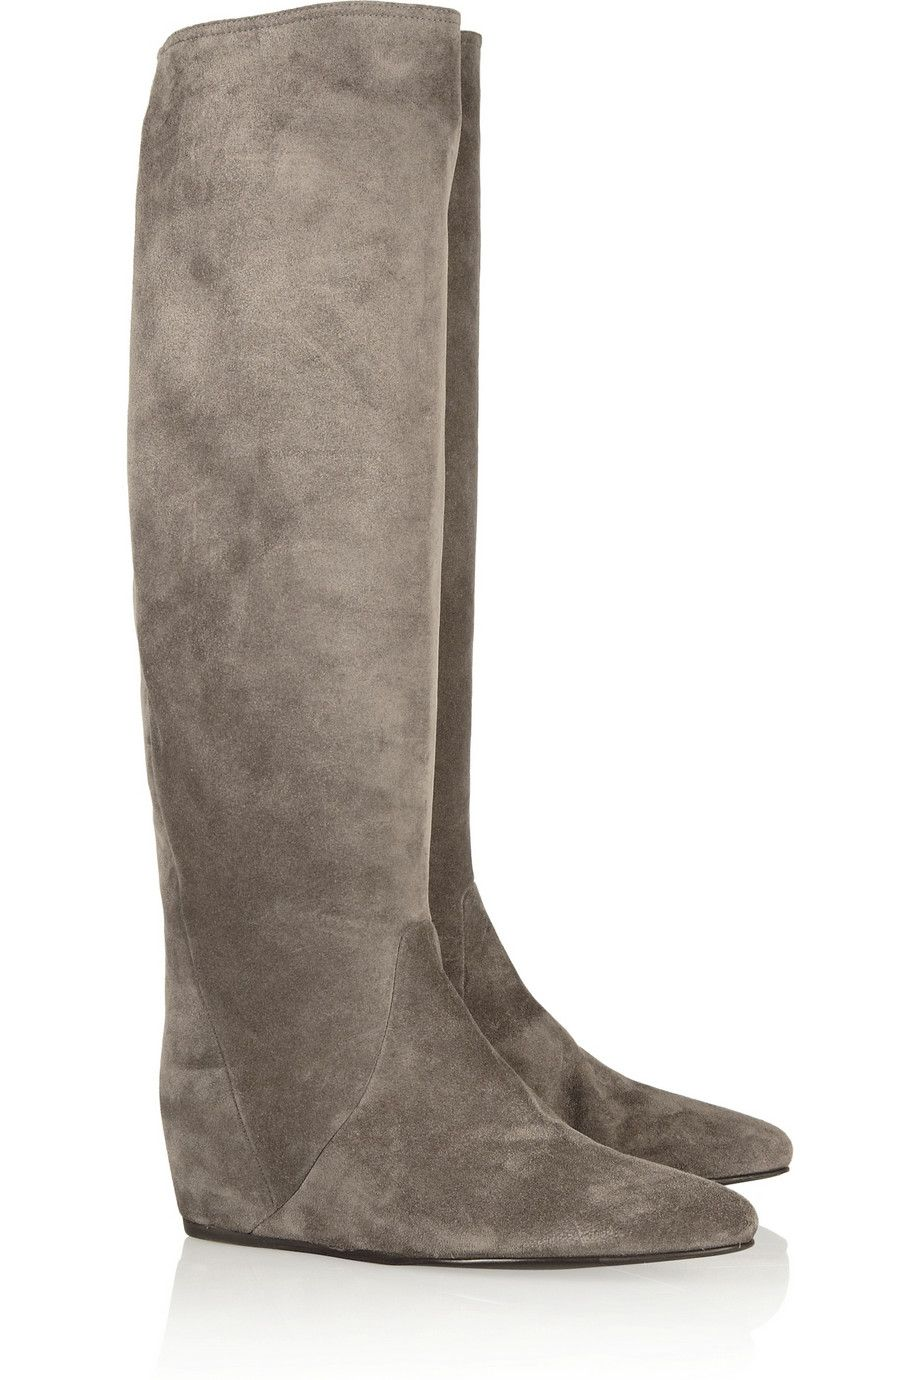 Lanvin   Suede concealed wedge knee boots   NET-A-PORTER.